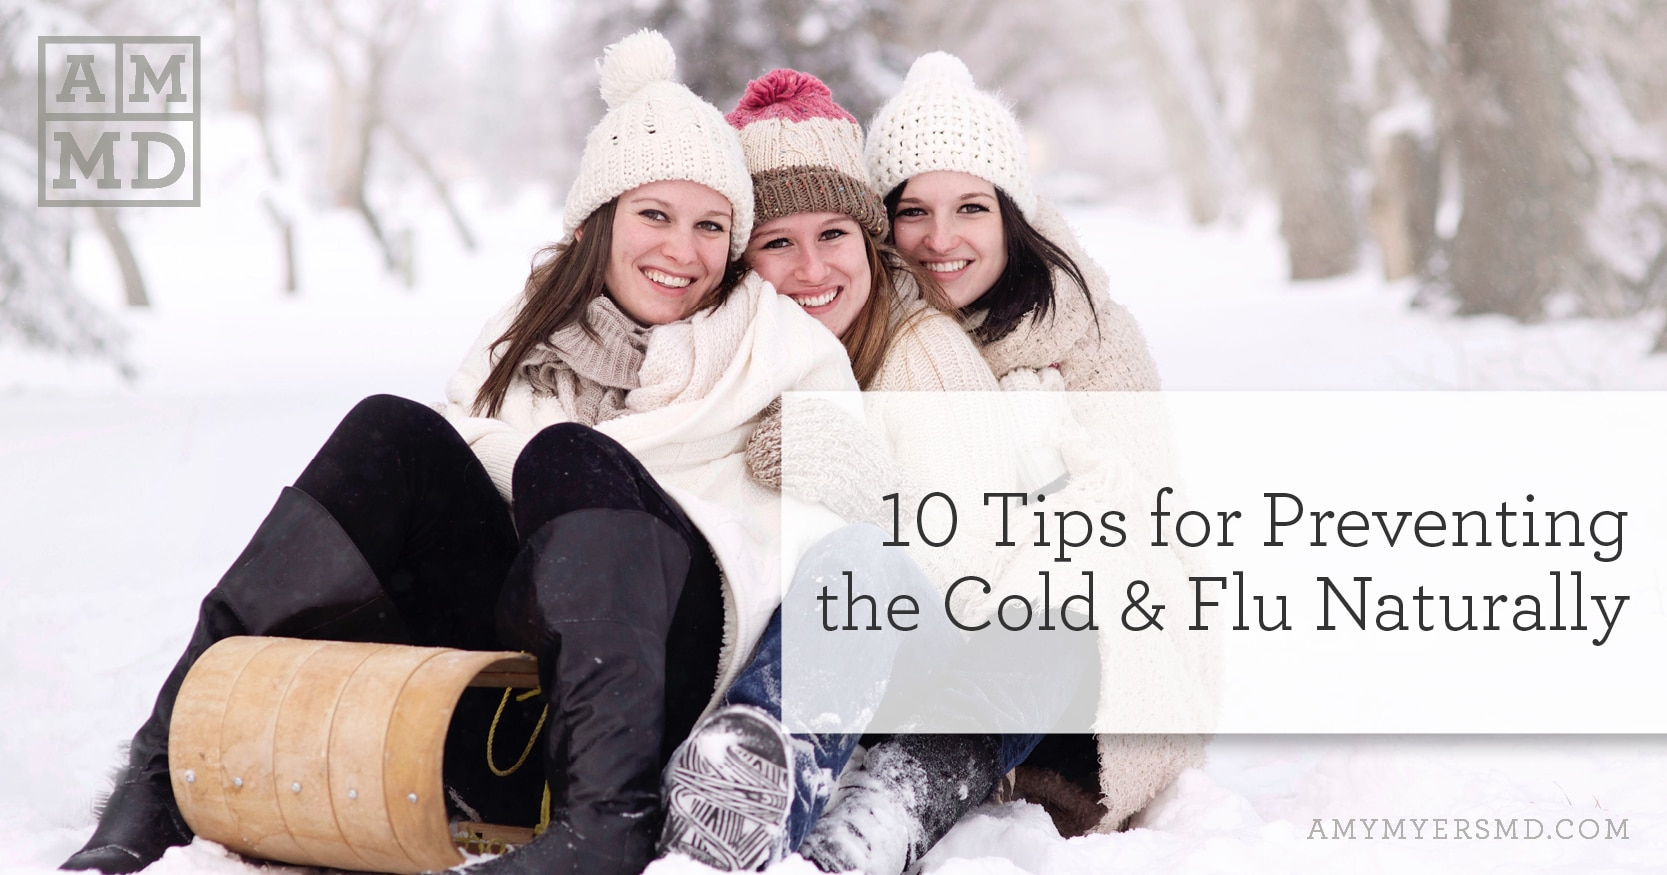 Tips for Preventing the Cold & Flu Naturally - Women on a sled - Featured Image - Amy Myers MD